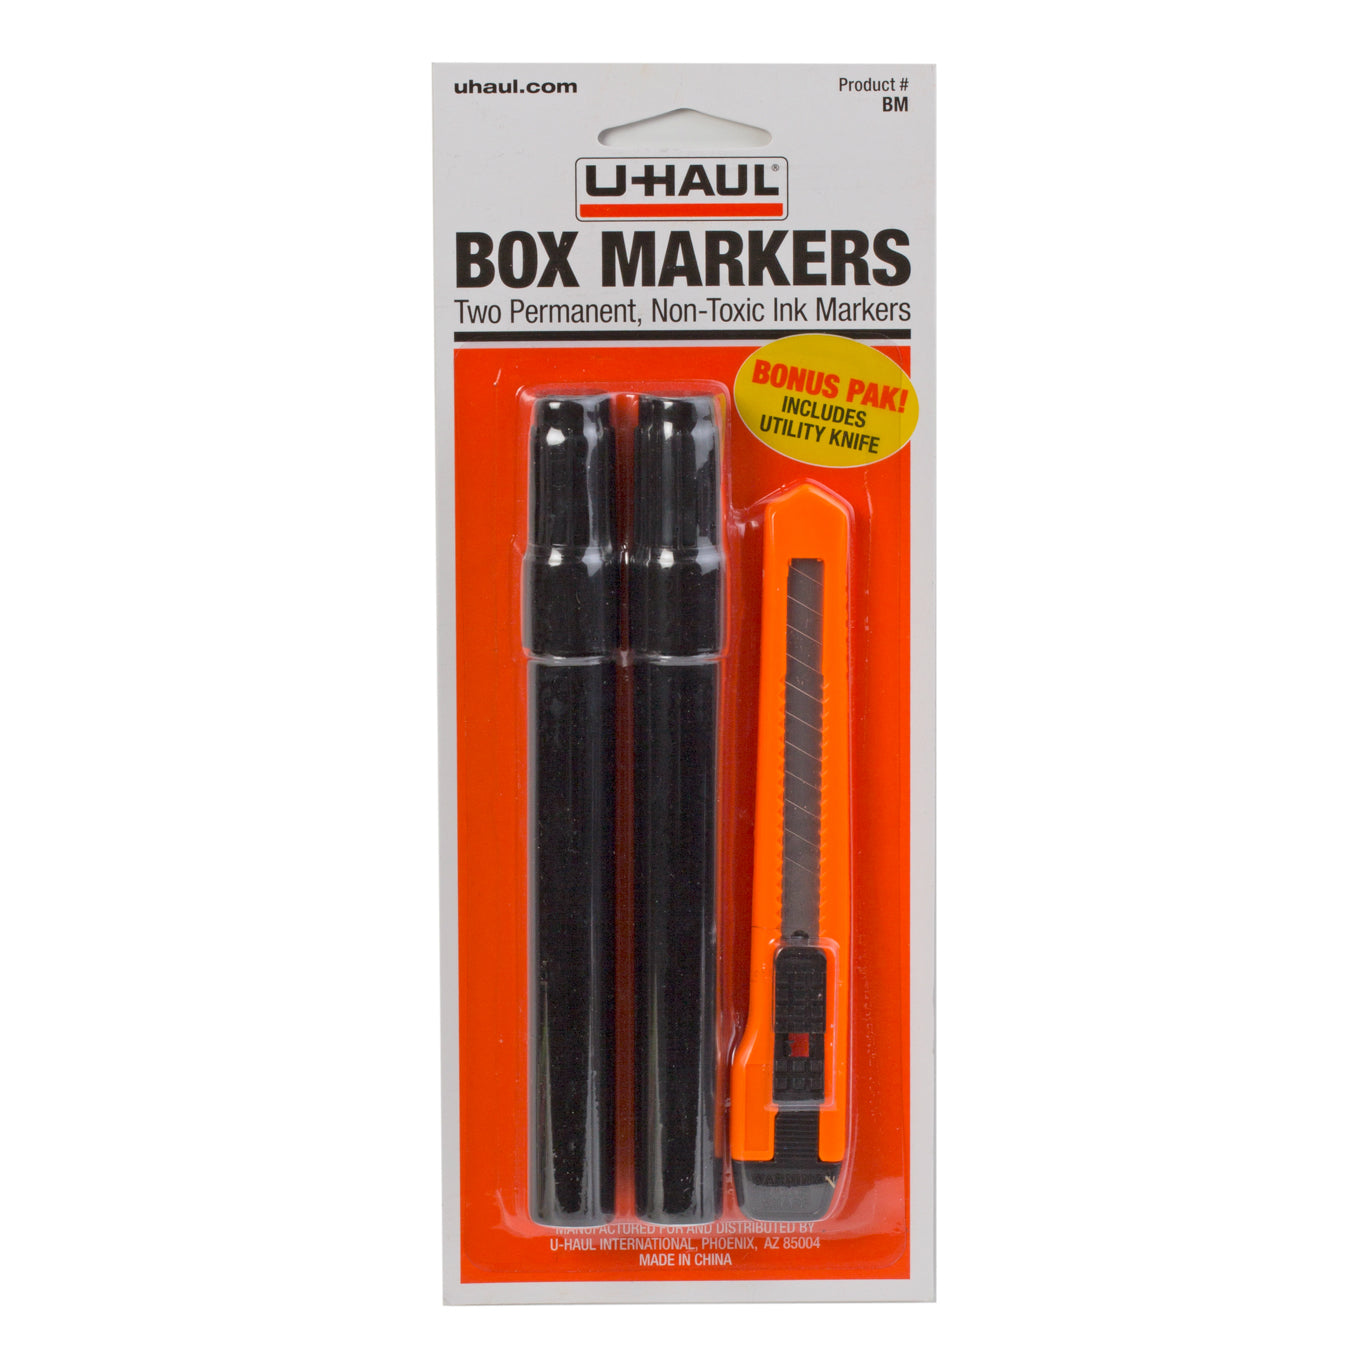 Box Markers With Knife